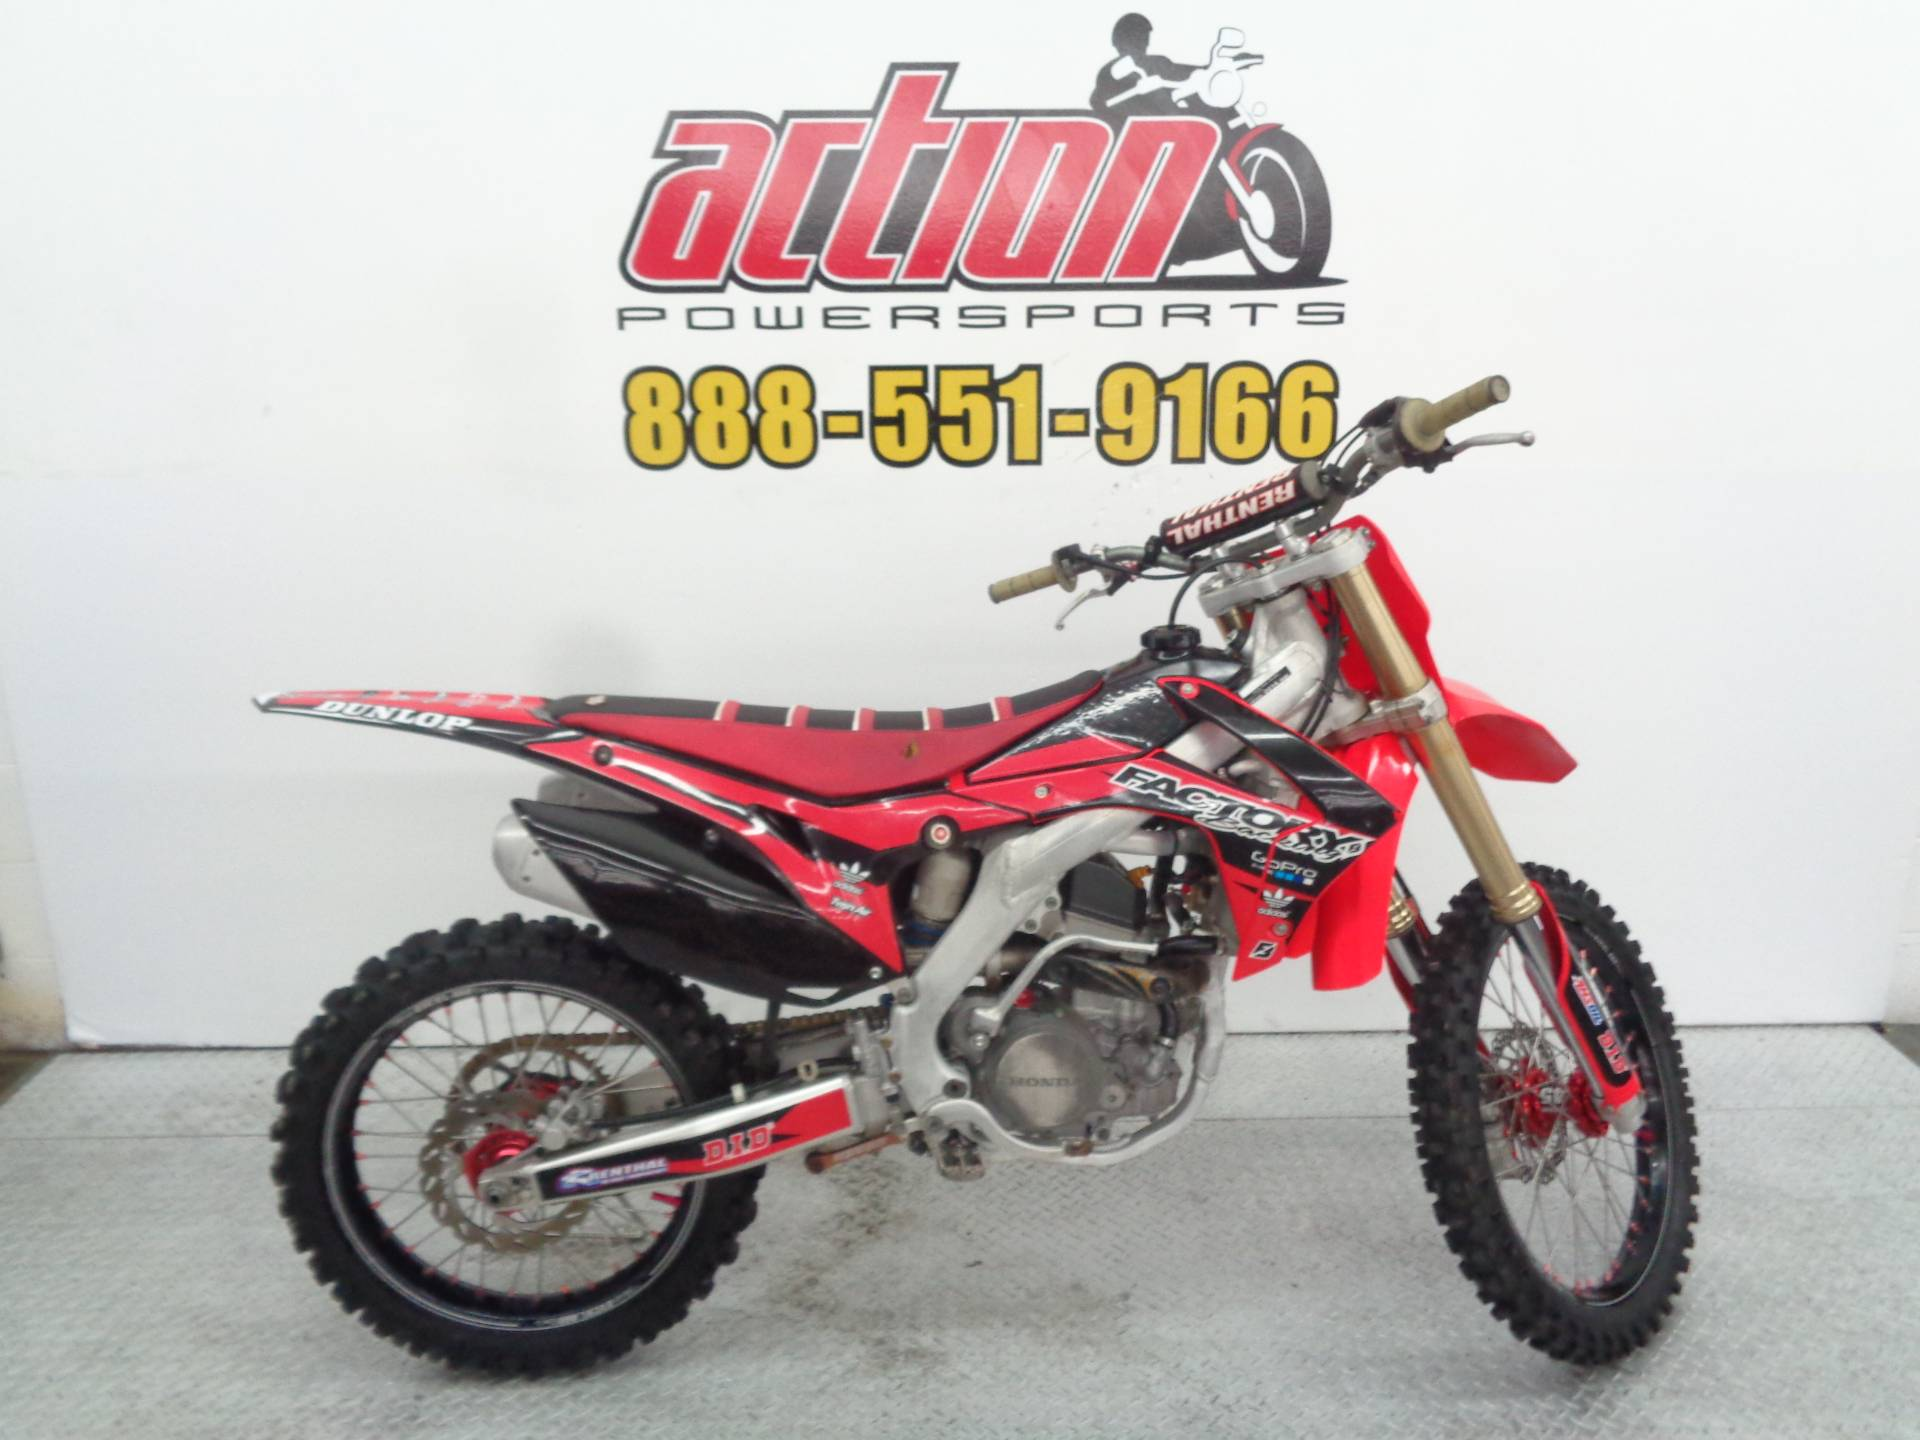 2014 Honda CRF250R for sale 1870